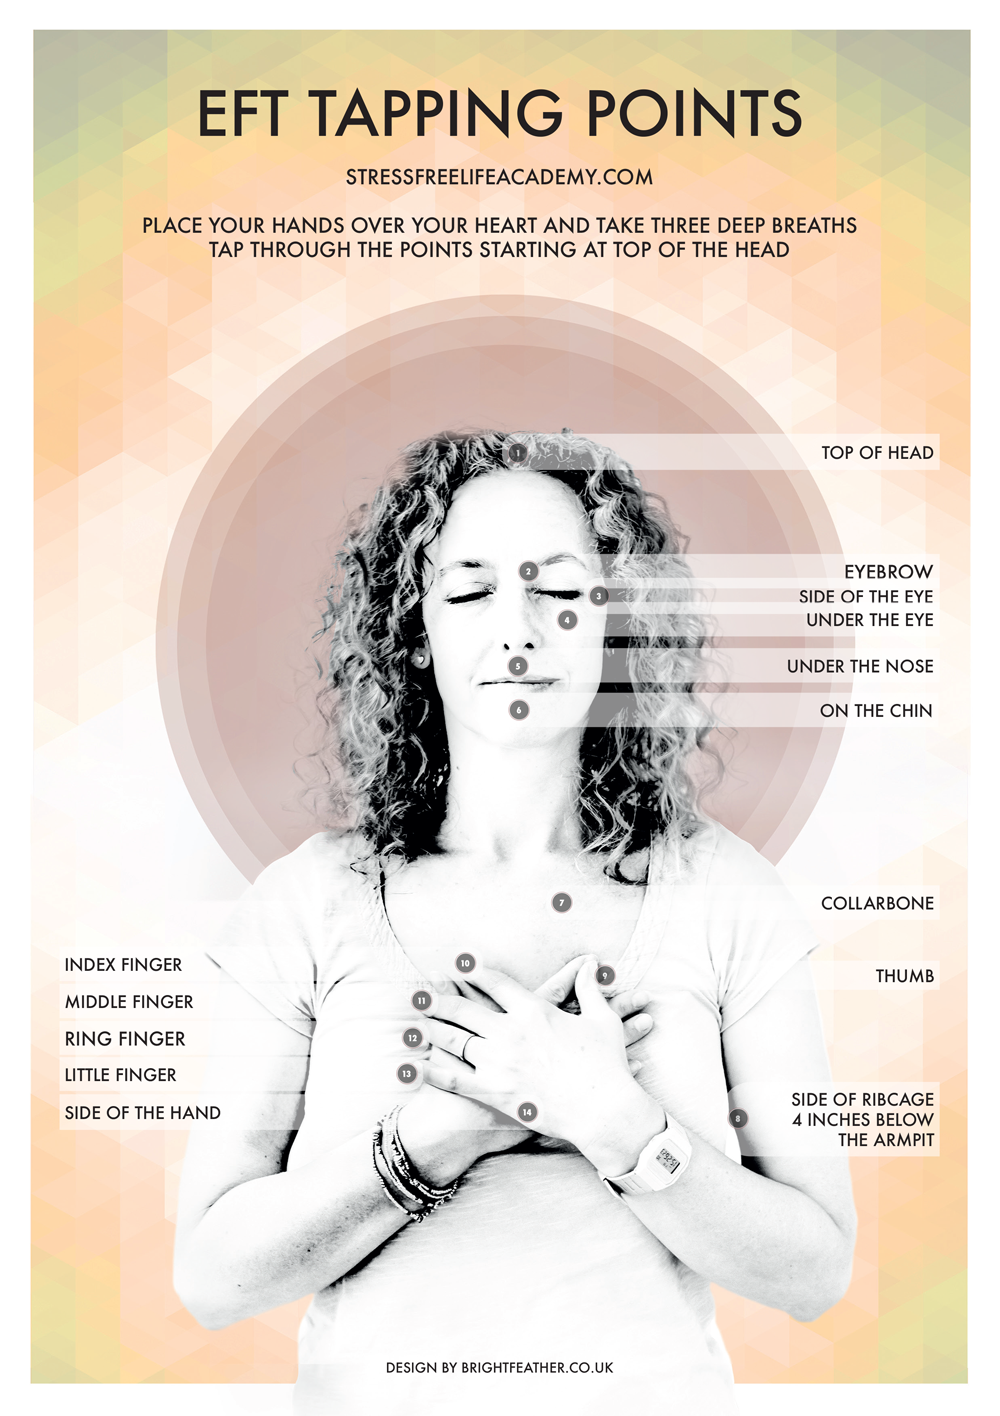 eft-tapping-points-stress-free-life-academy-1.png